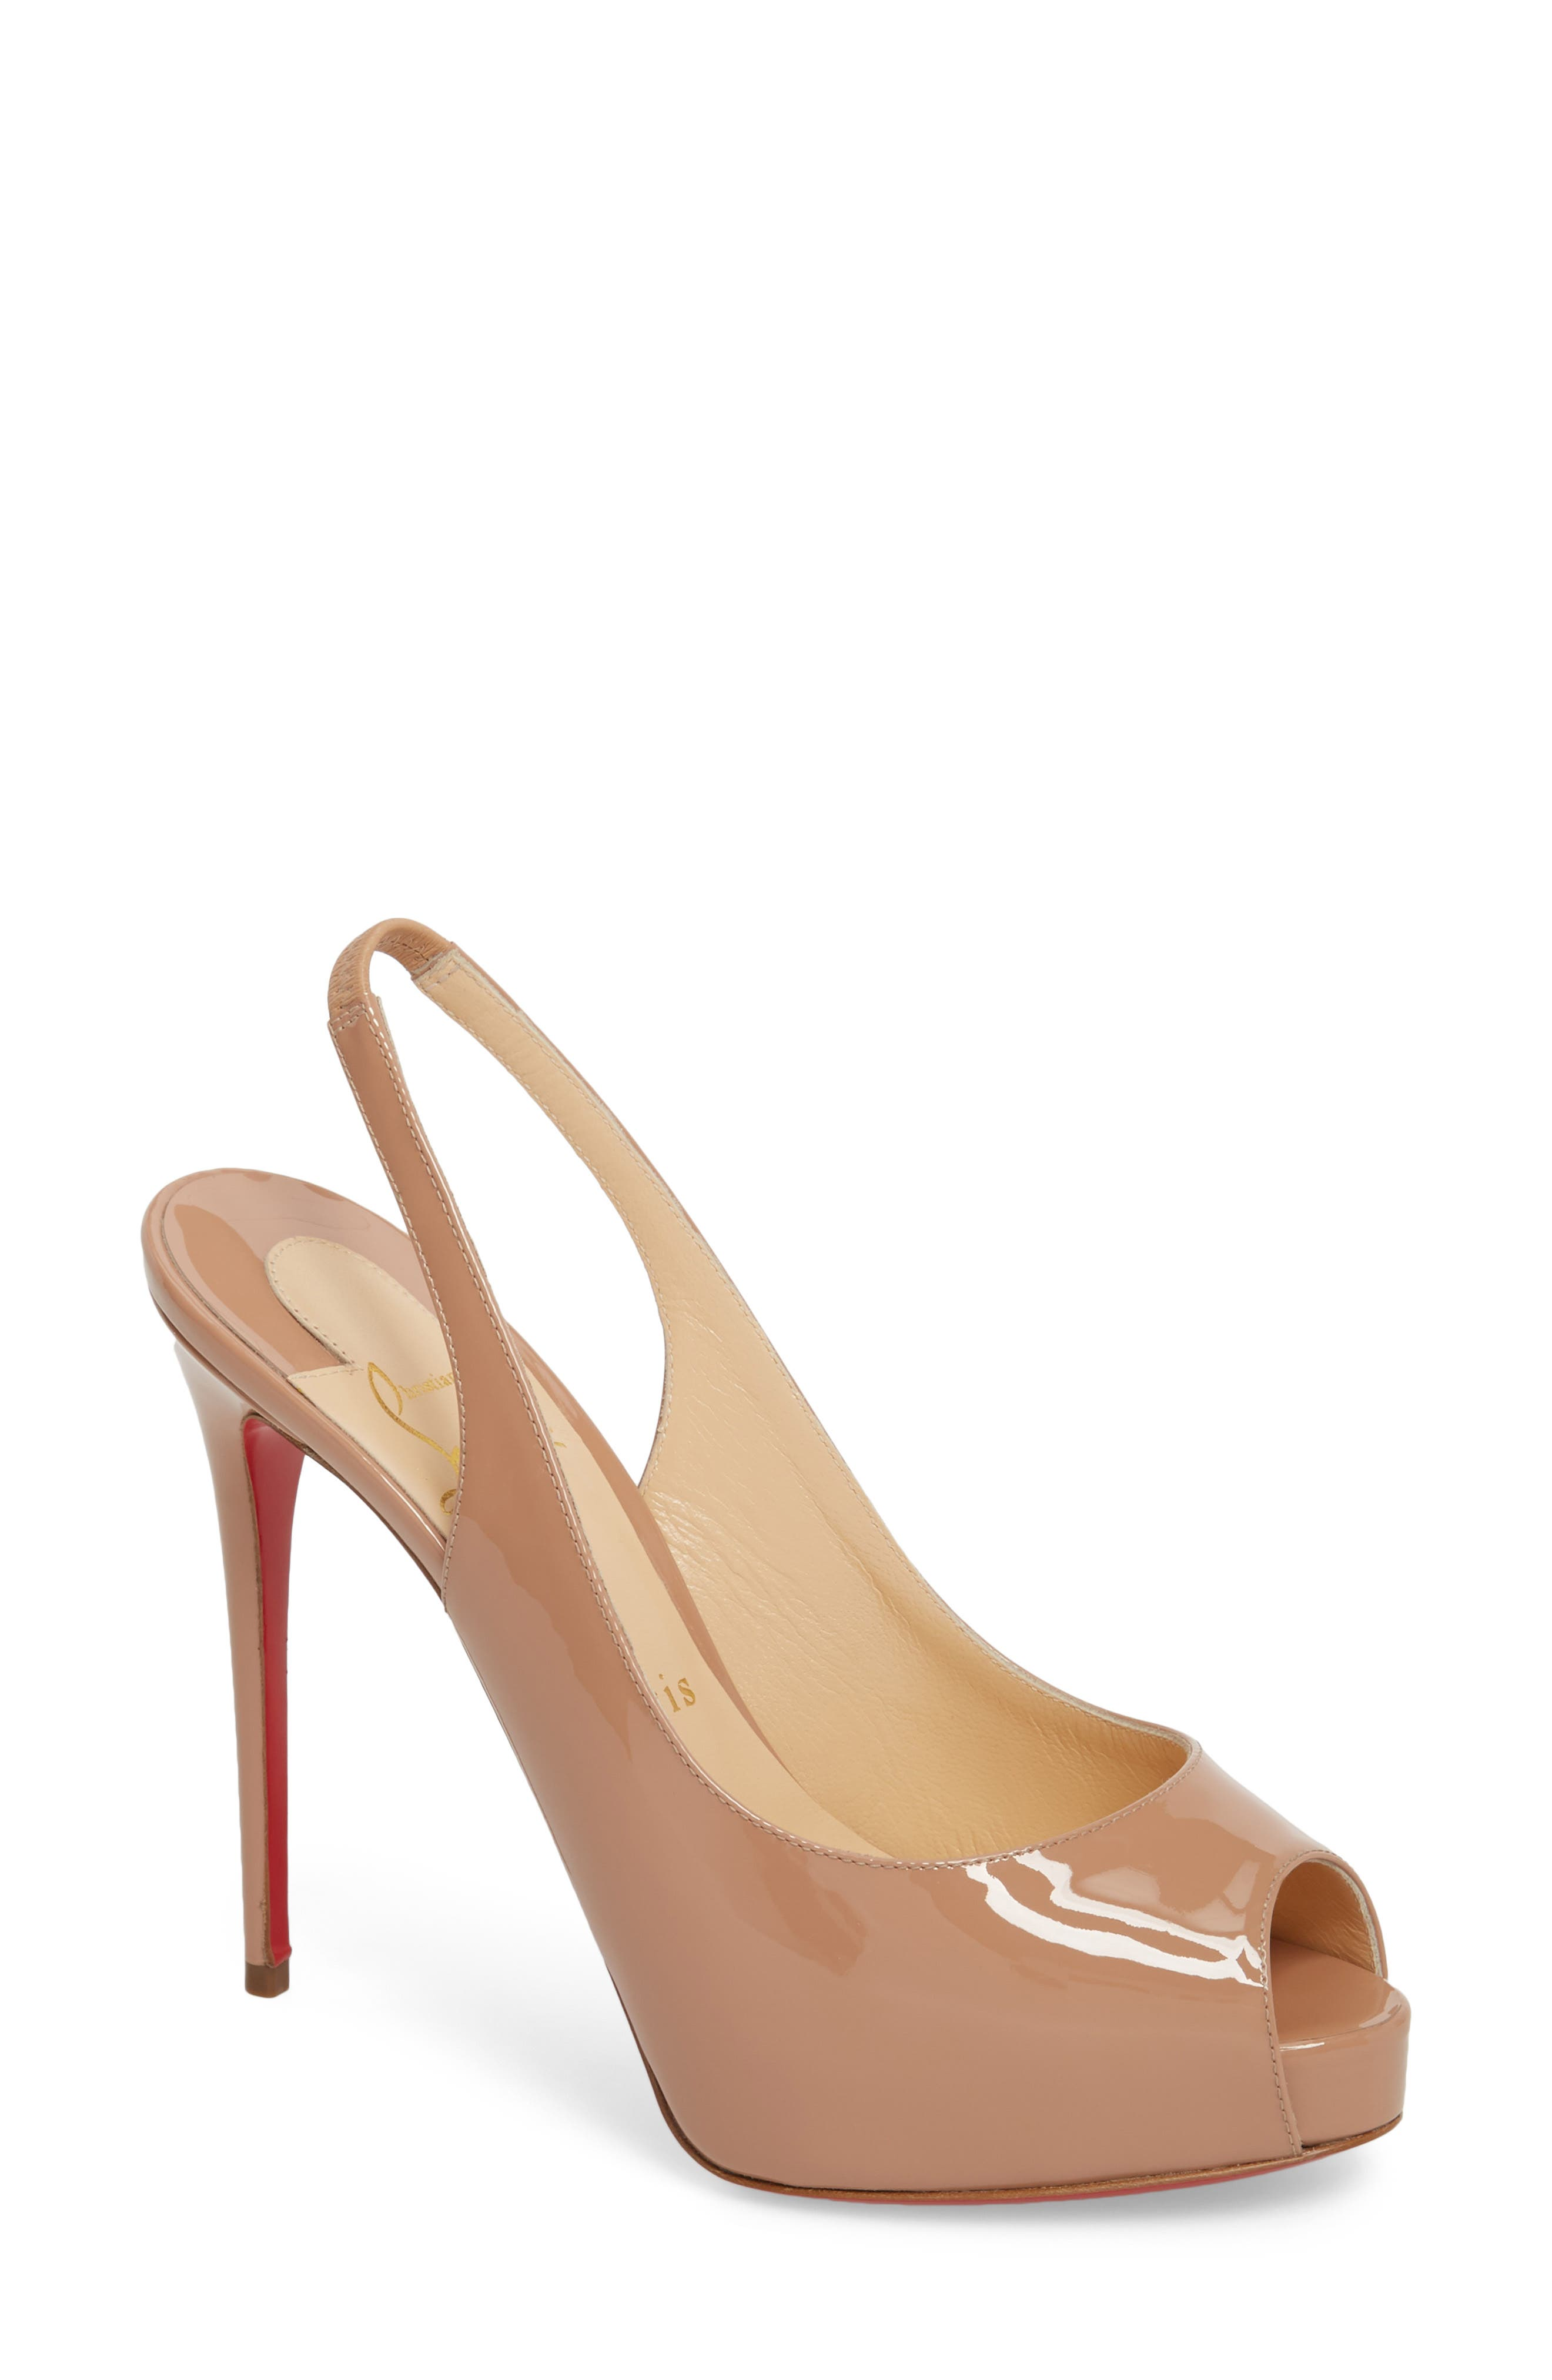 Christian Louboutin Private Number Peep Toe Pump (Women)